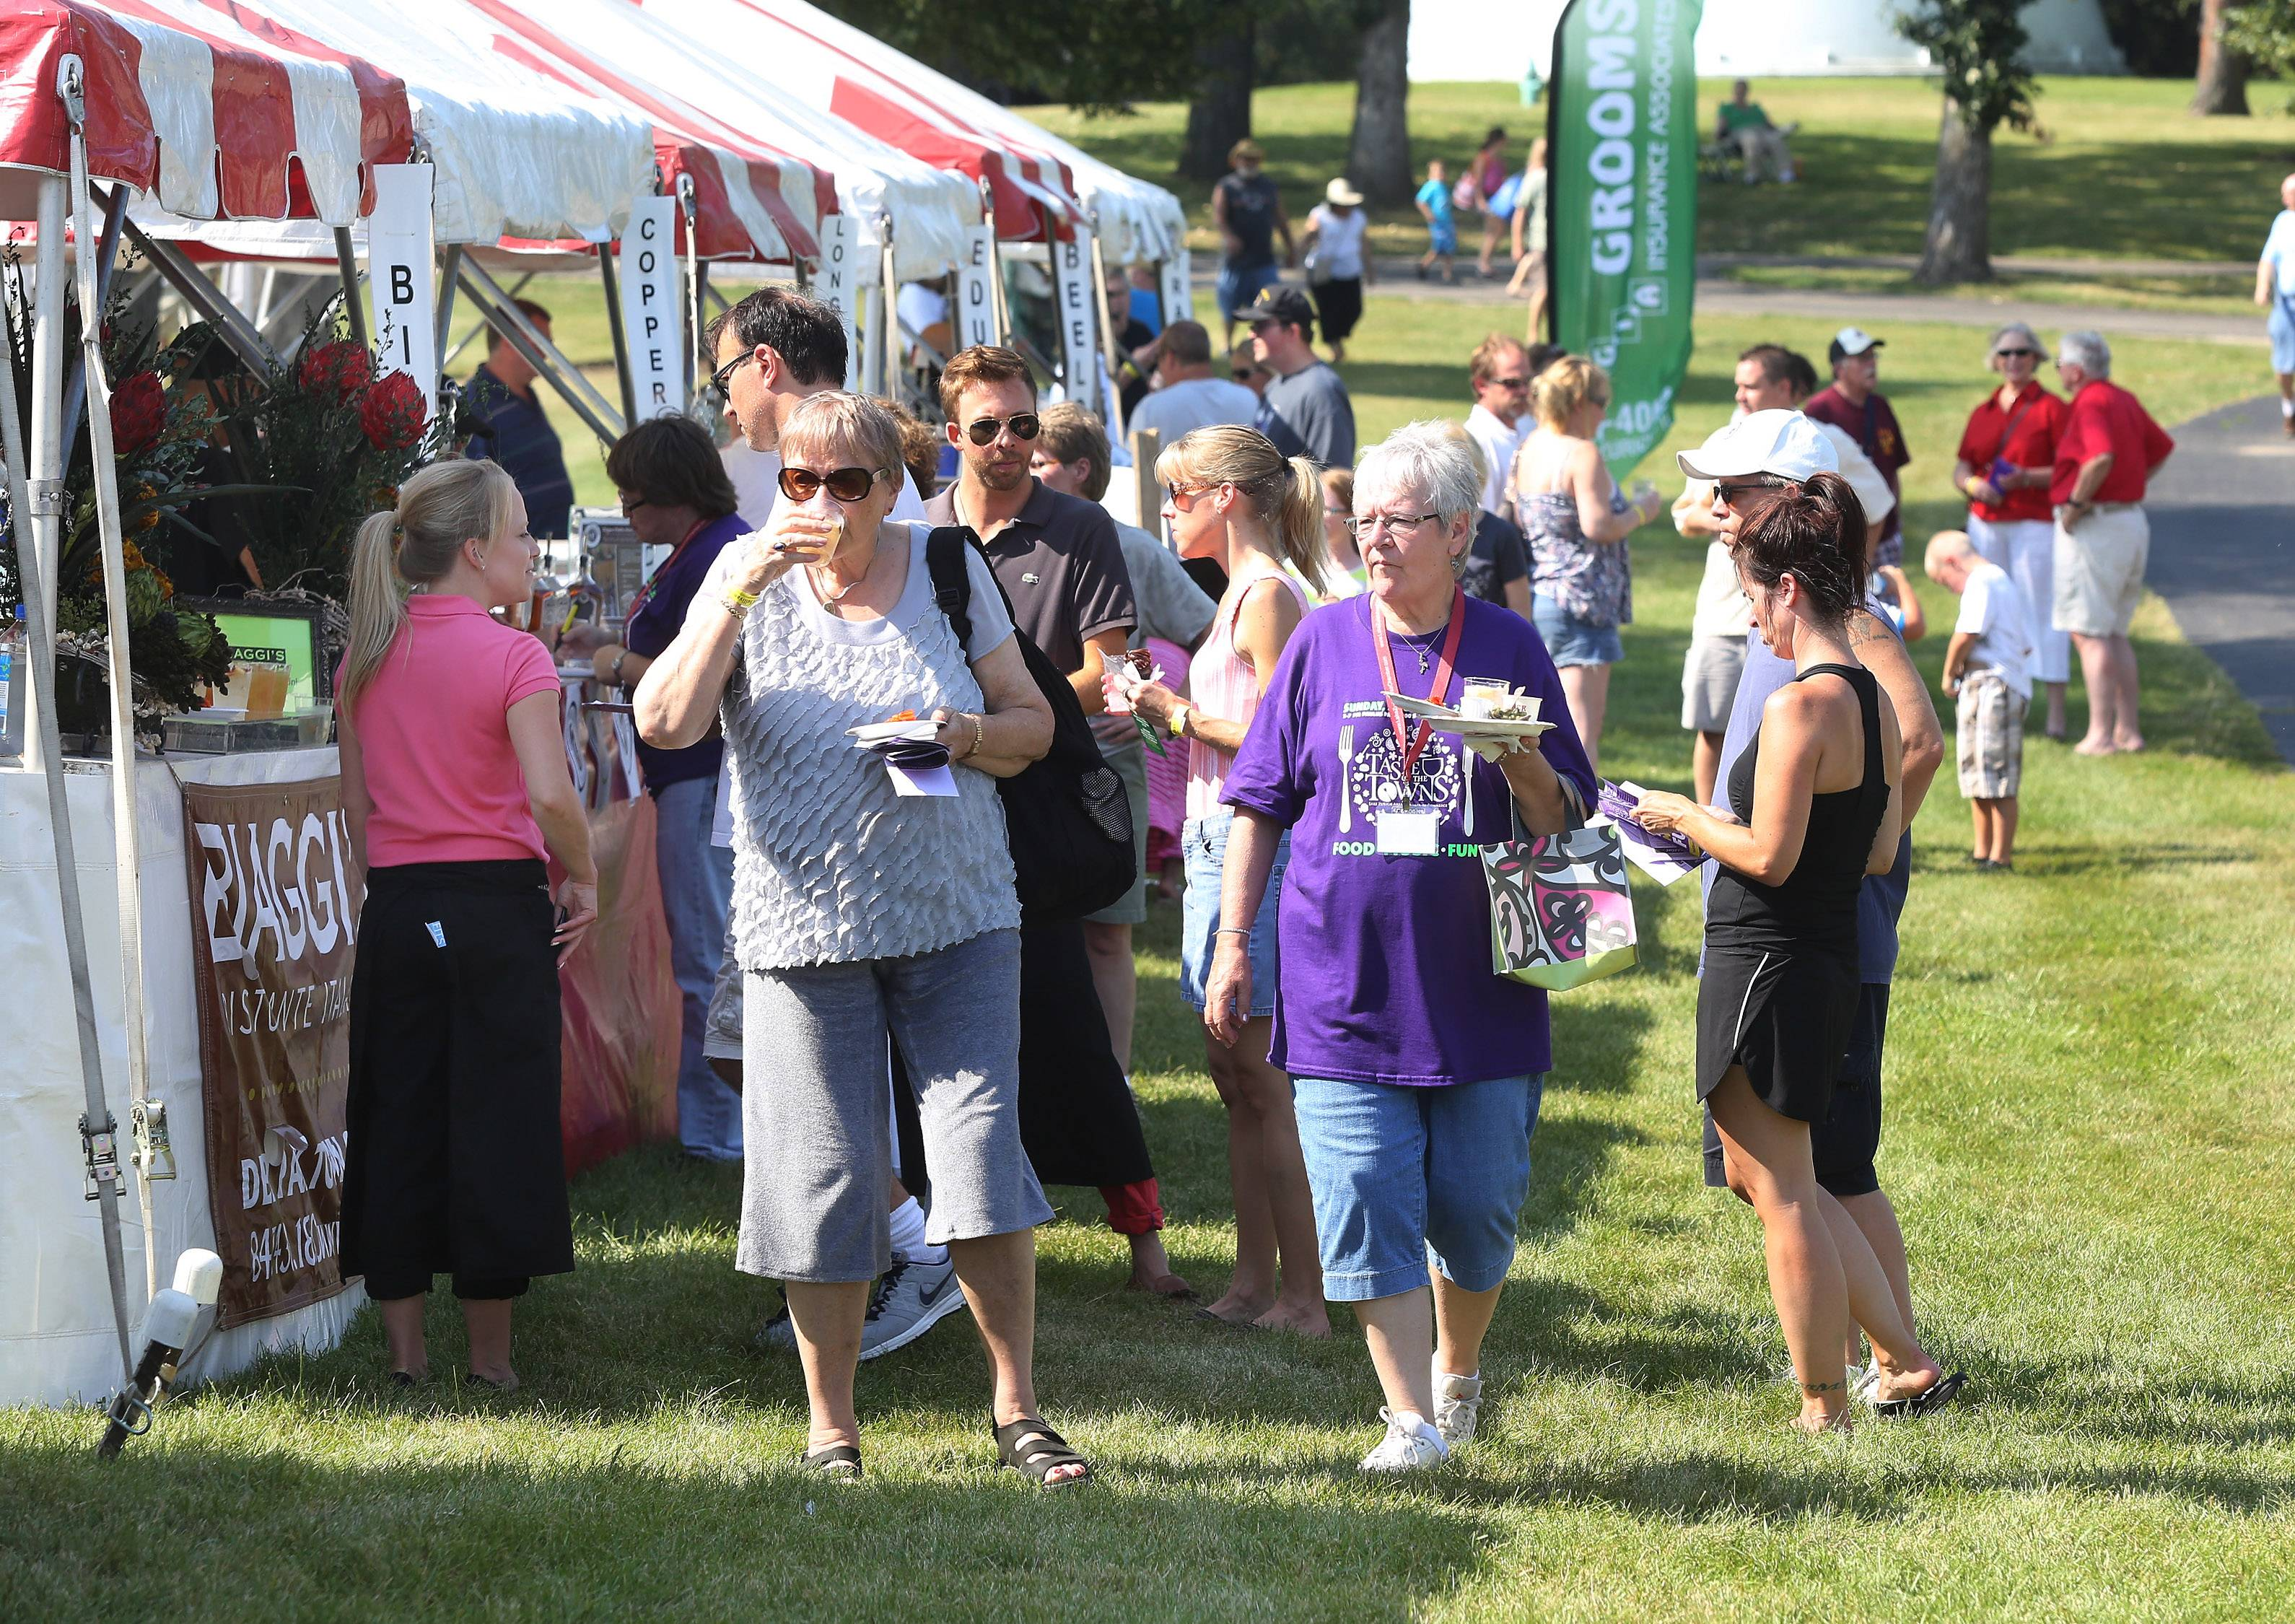 The eighth annual Lake Zurich Taste of the Towns is Sunday at Paulus Park. The event includes restaurants, wineries, breweries and grocery stores from around the area.